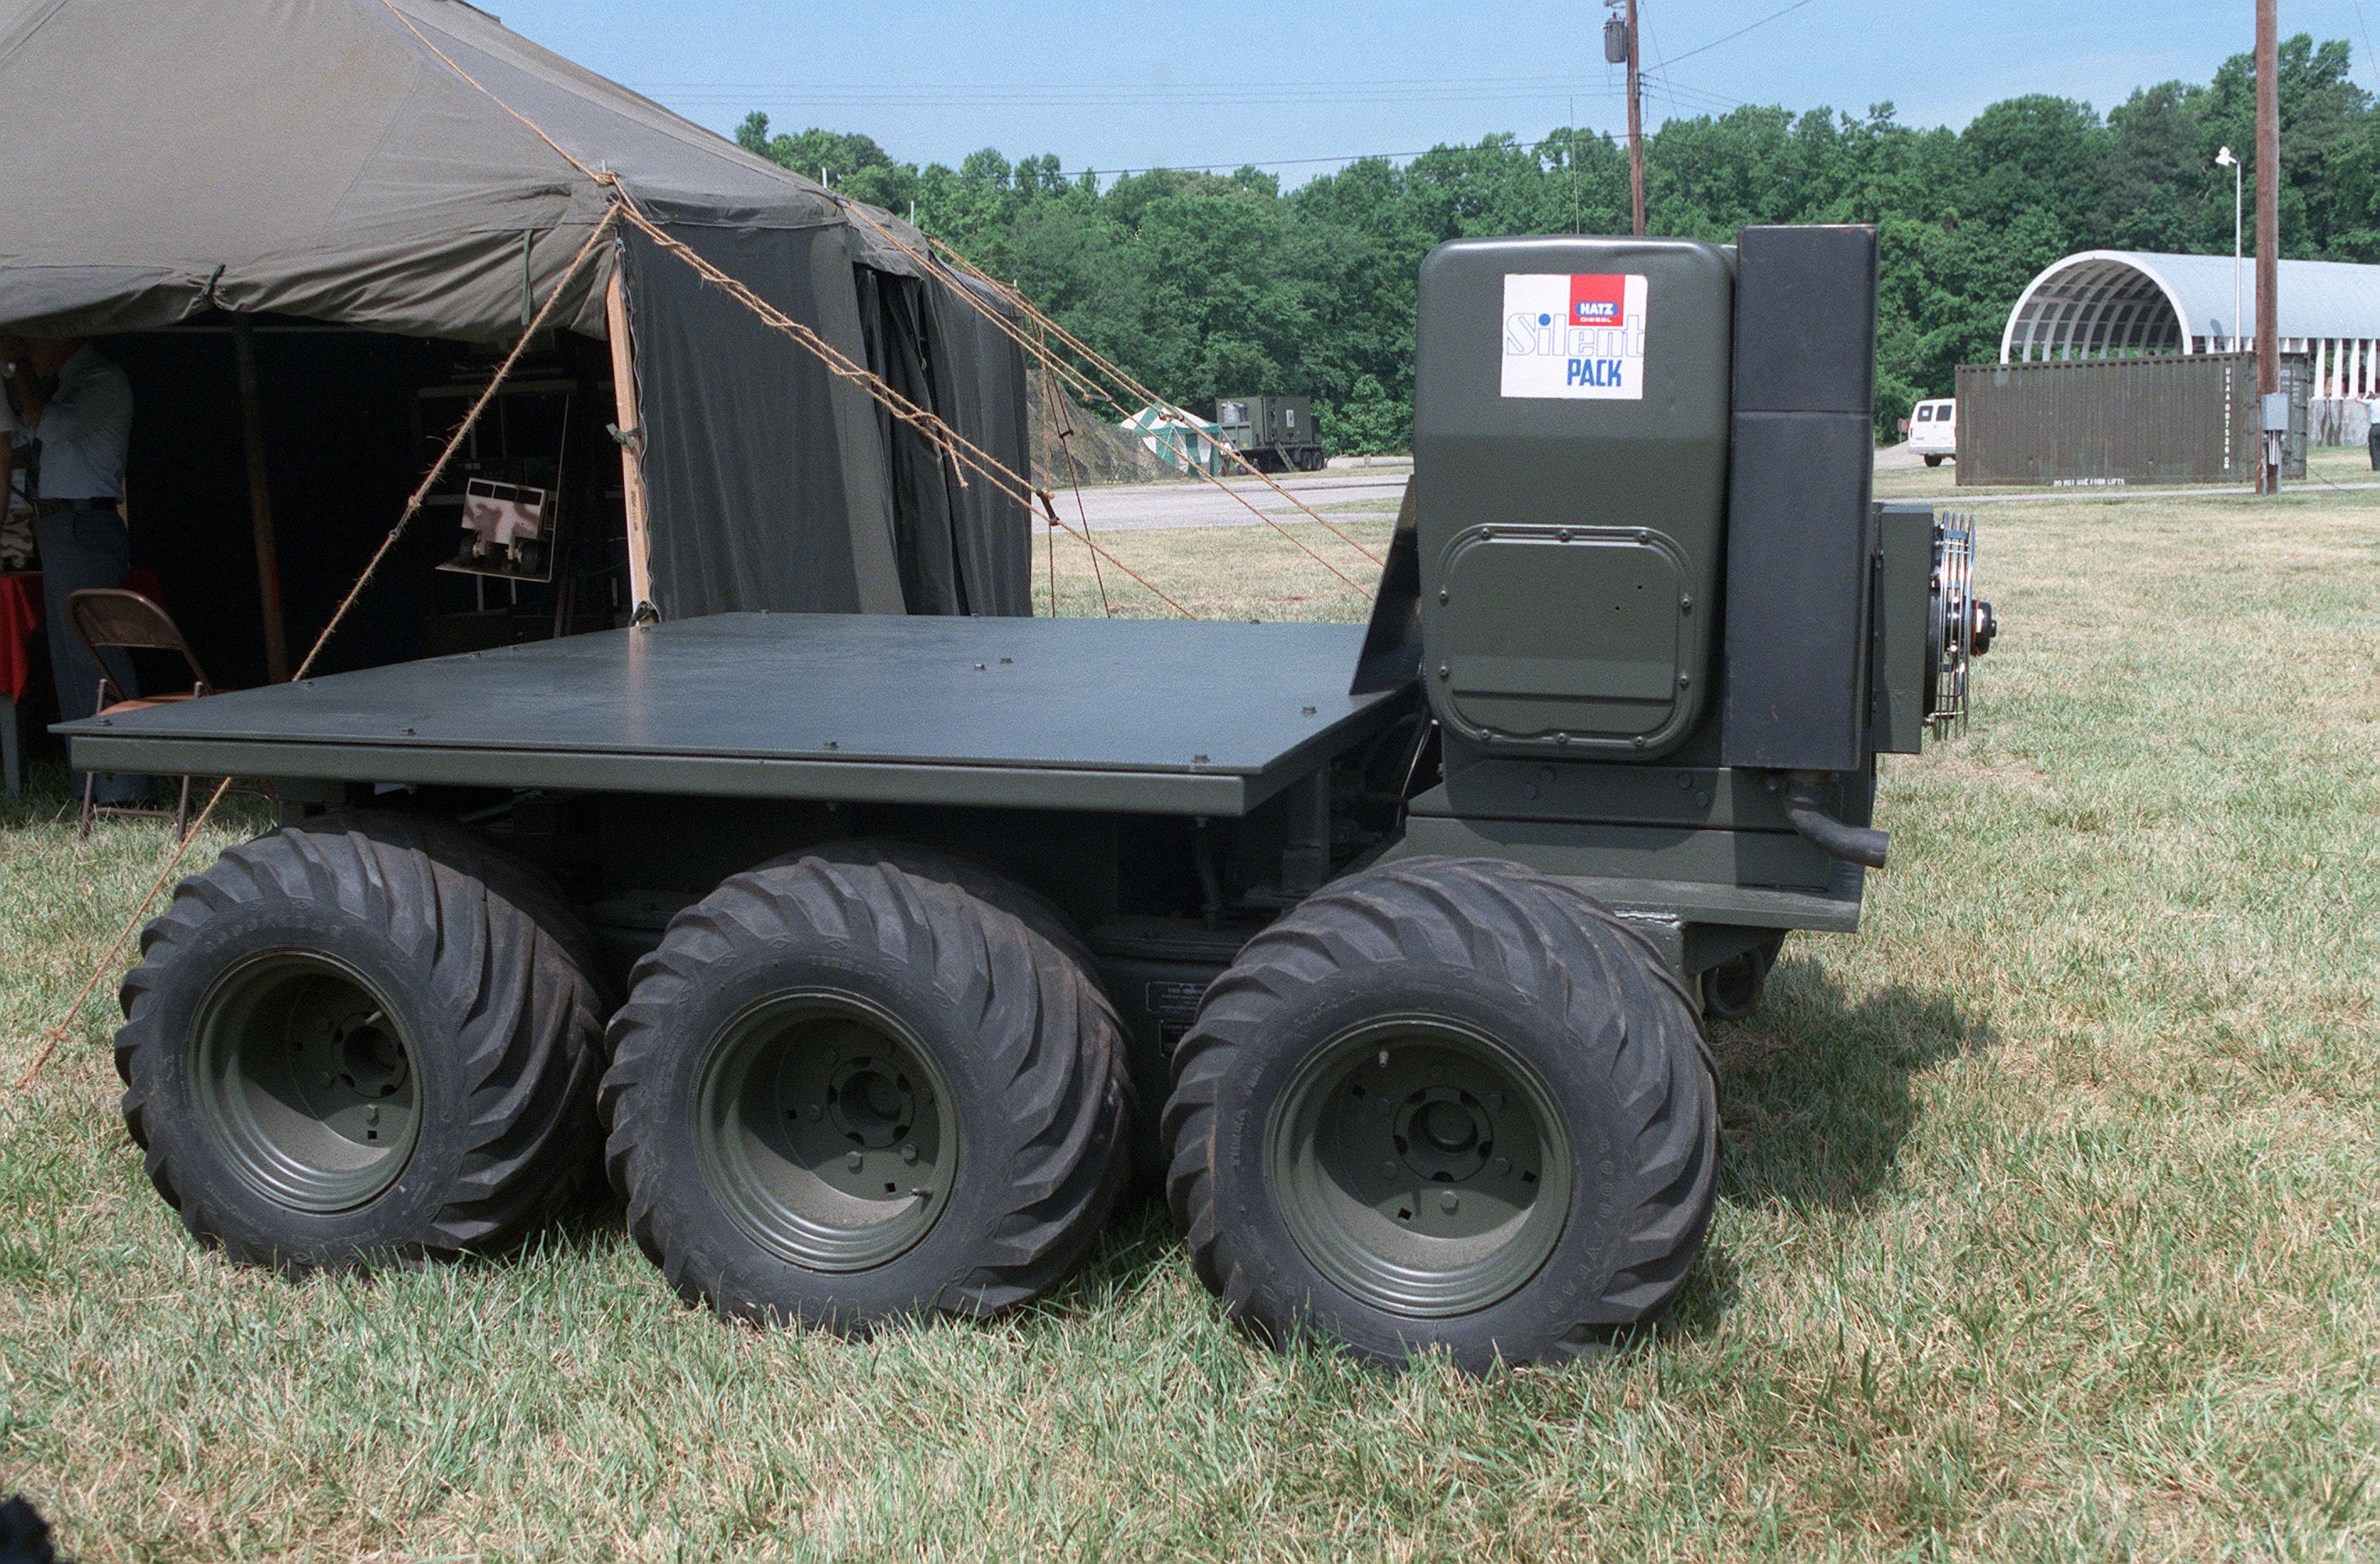 http://upload.wikimedia.org/wikipedia/commons/d/d6/Standard_Manufacturing_Co._remote_control_all_terrain_vehicle,_1985.JPEG